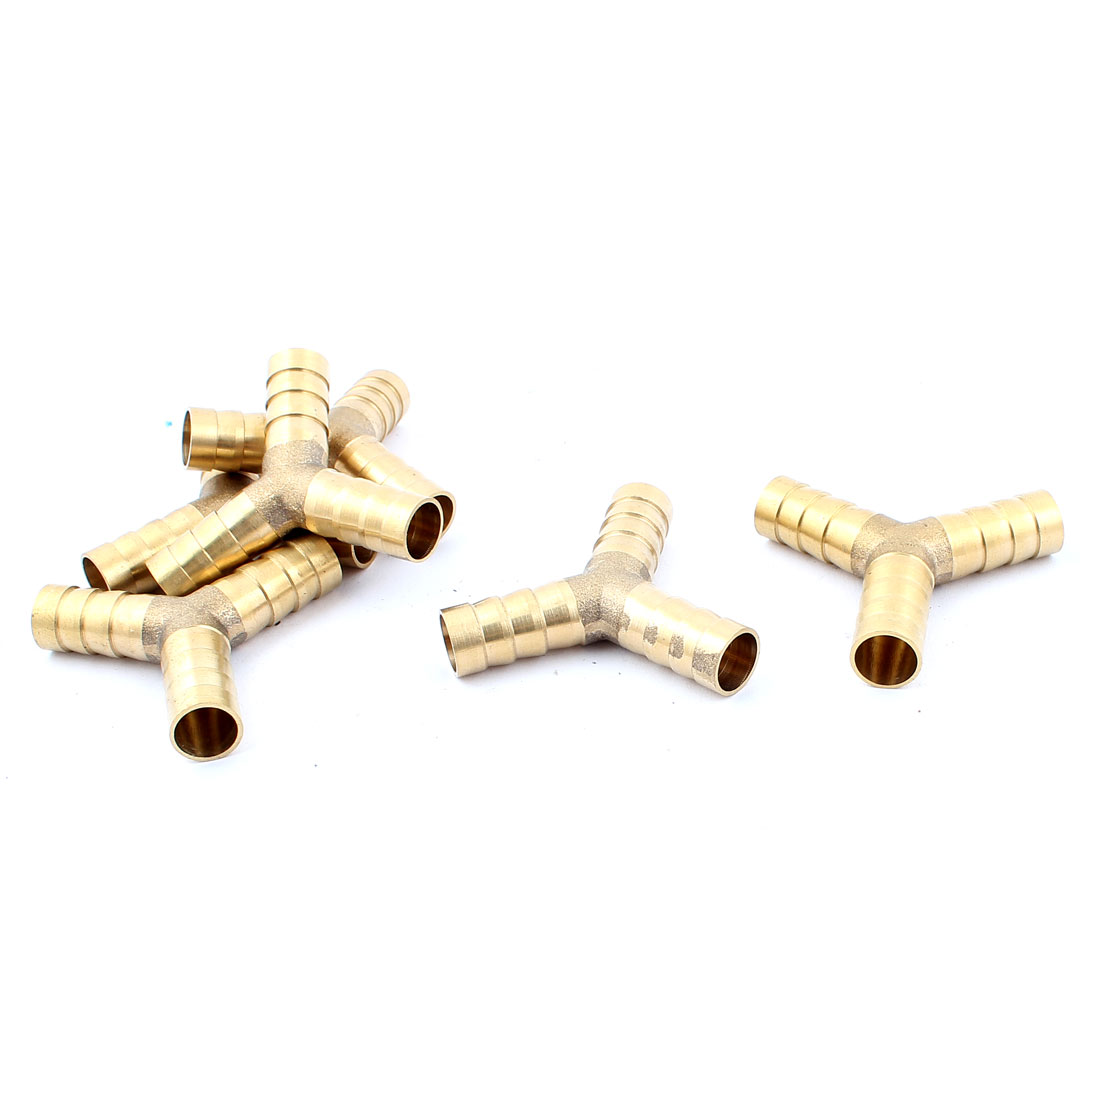 Y Shaped 3 Ways 10mm Dia Air Hose Barb Coupler Fitting Connector Gold Tone 6pcs